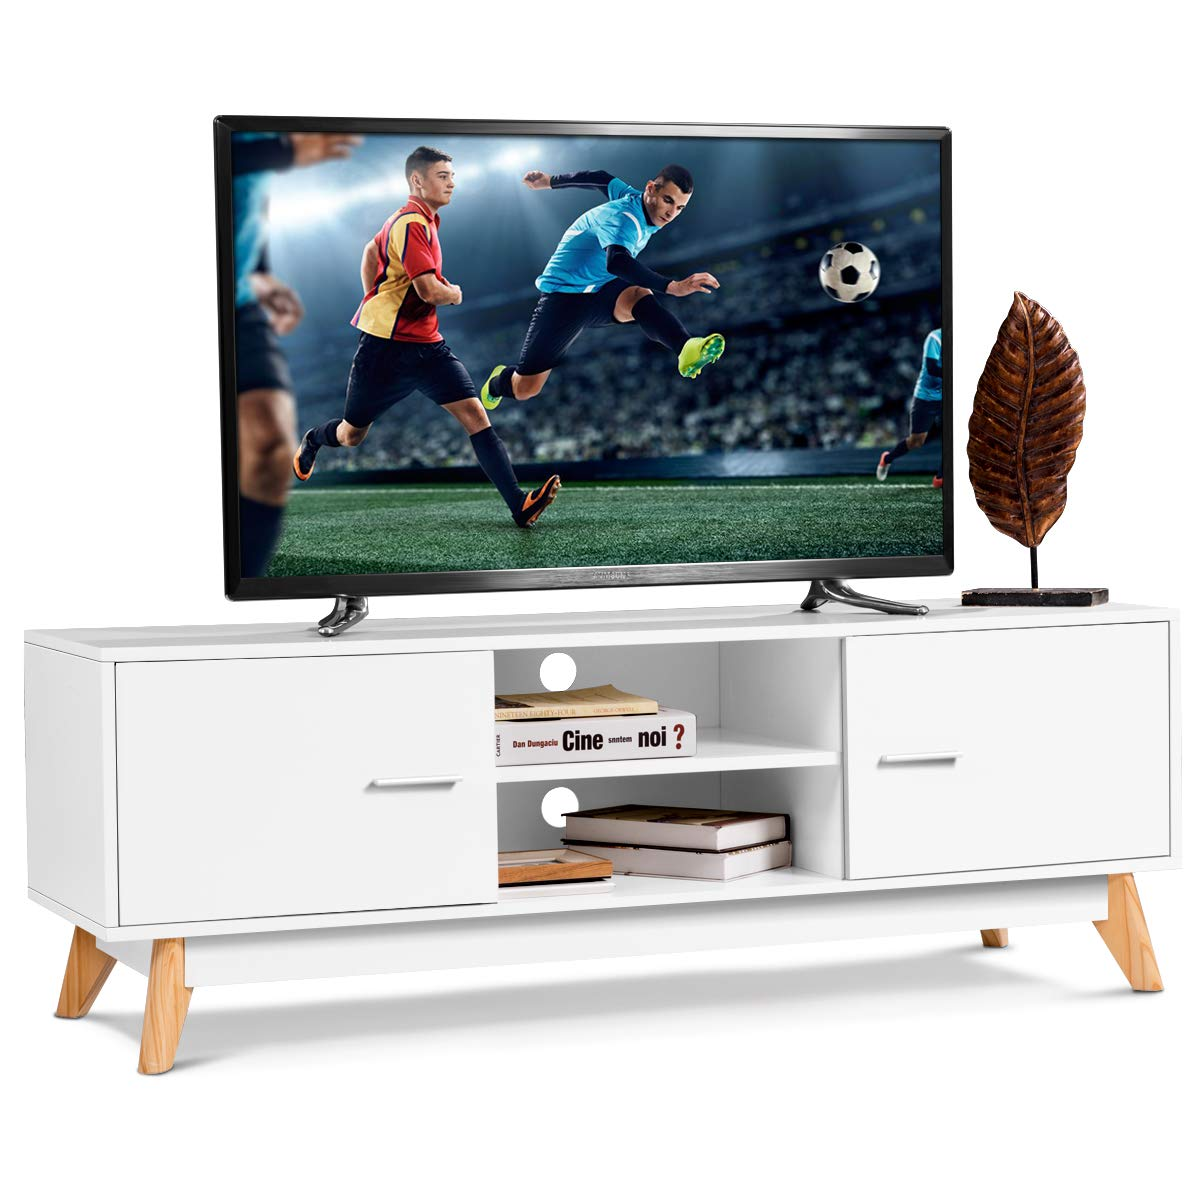 Tangkula Modern White TV Stand, Wooden TV Stand for 60 Inch TV, with 2 Storage Cabinets 2 Open Shelves, for Home Living Room Furniture, Wood TV Stand